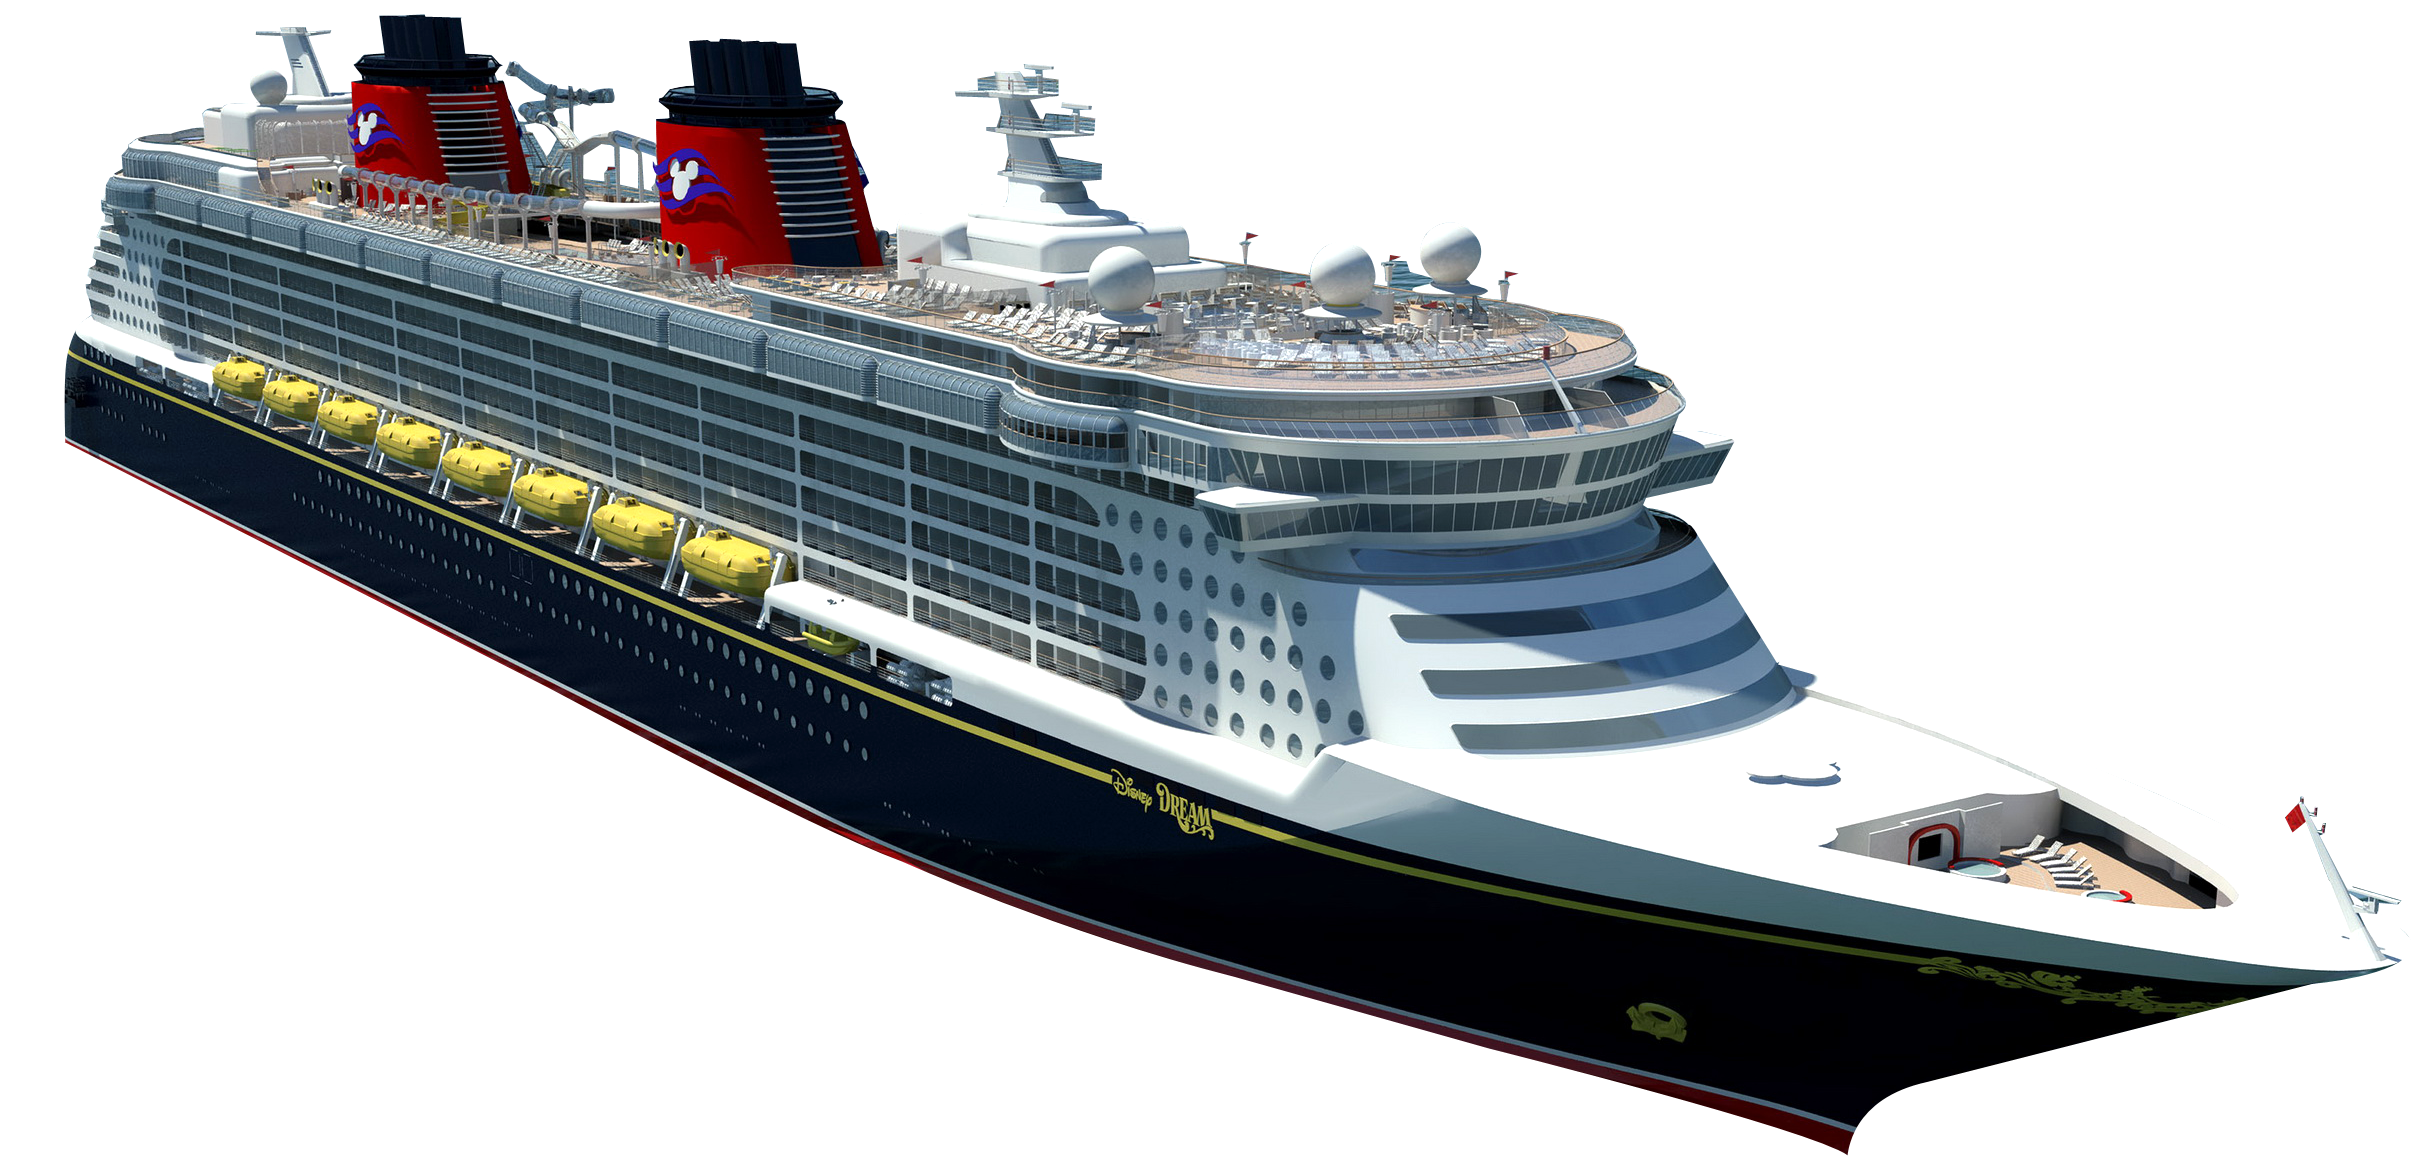 Clipart boat passenger boat. Cruise ship png image